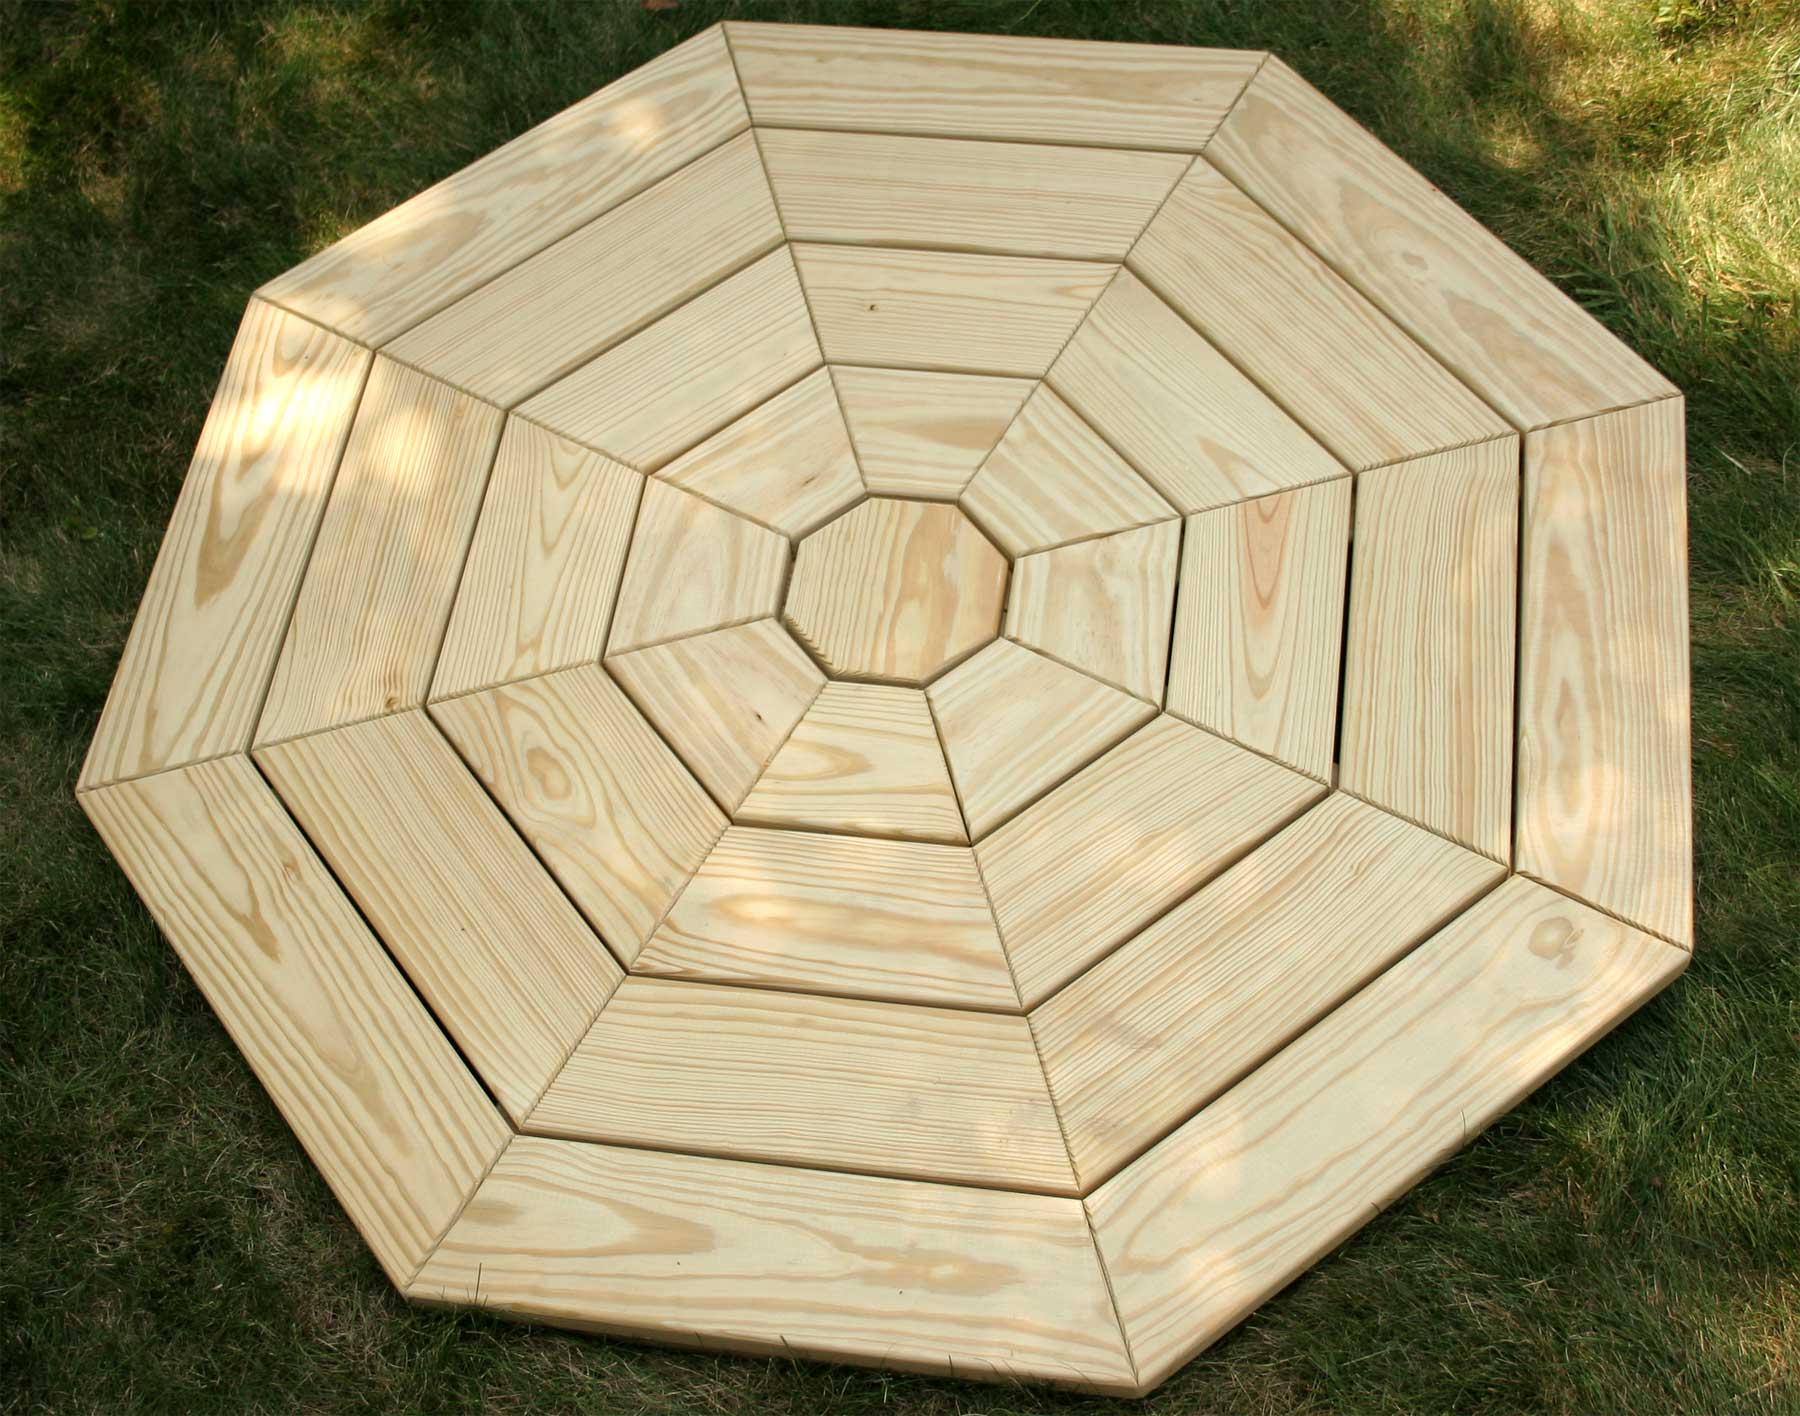 Hexagon Picnic Table Plans With Umbrella Hole Free | Best Garden Ideas